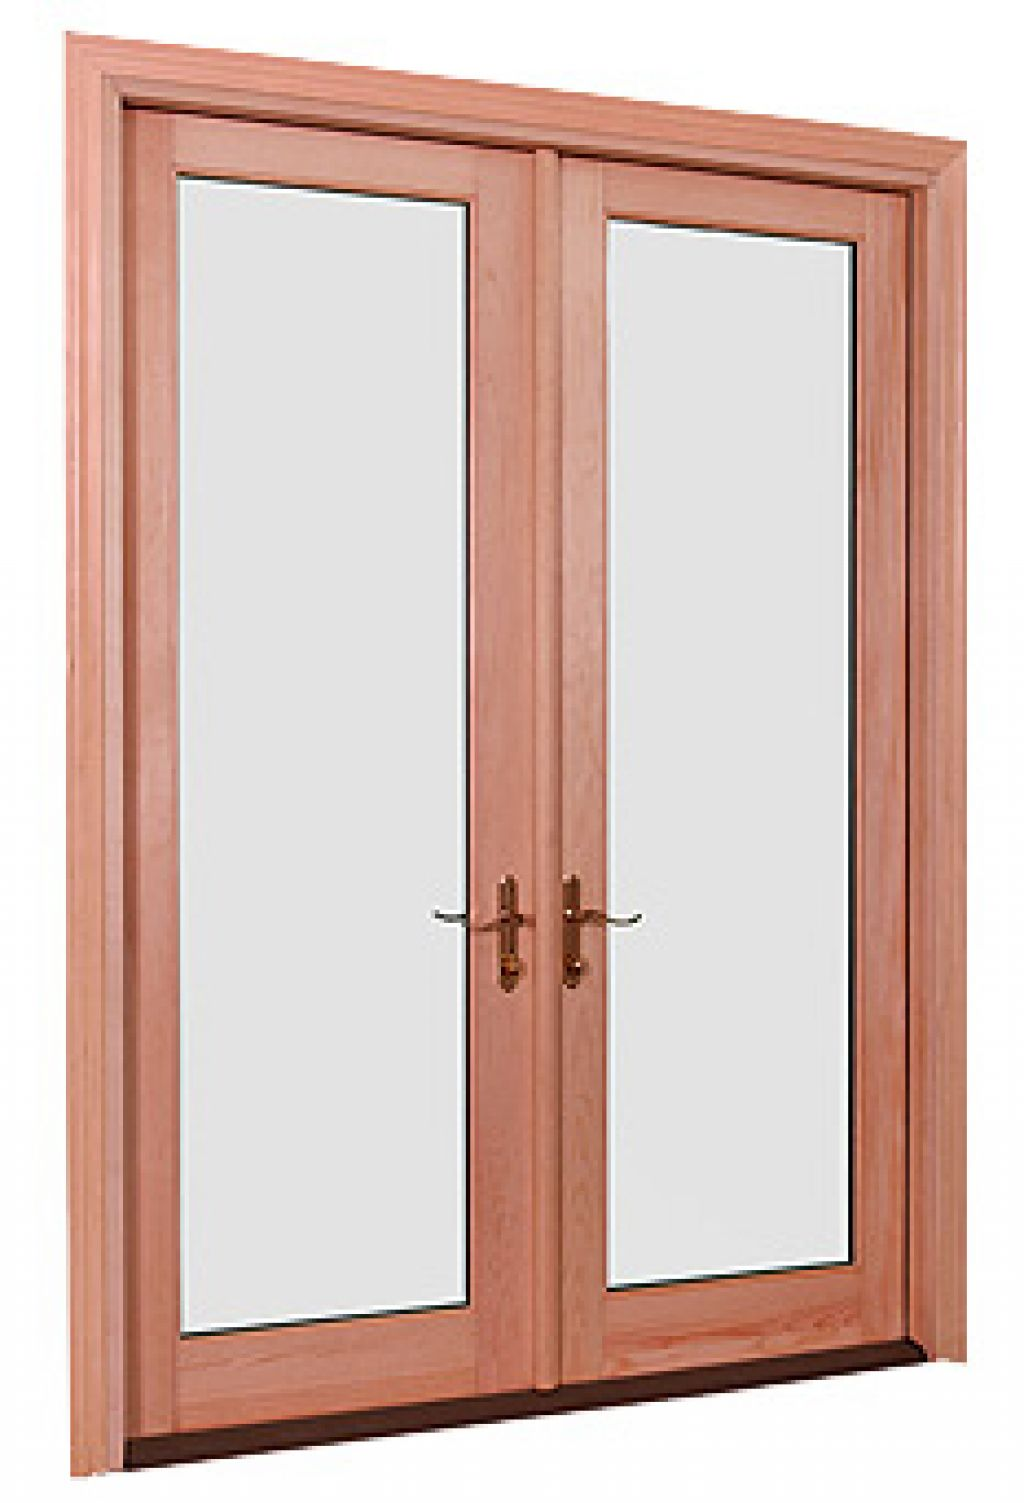 Andersen Exterior French Doors Of 20 Reasons To Install French Doors Exterior Andersen